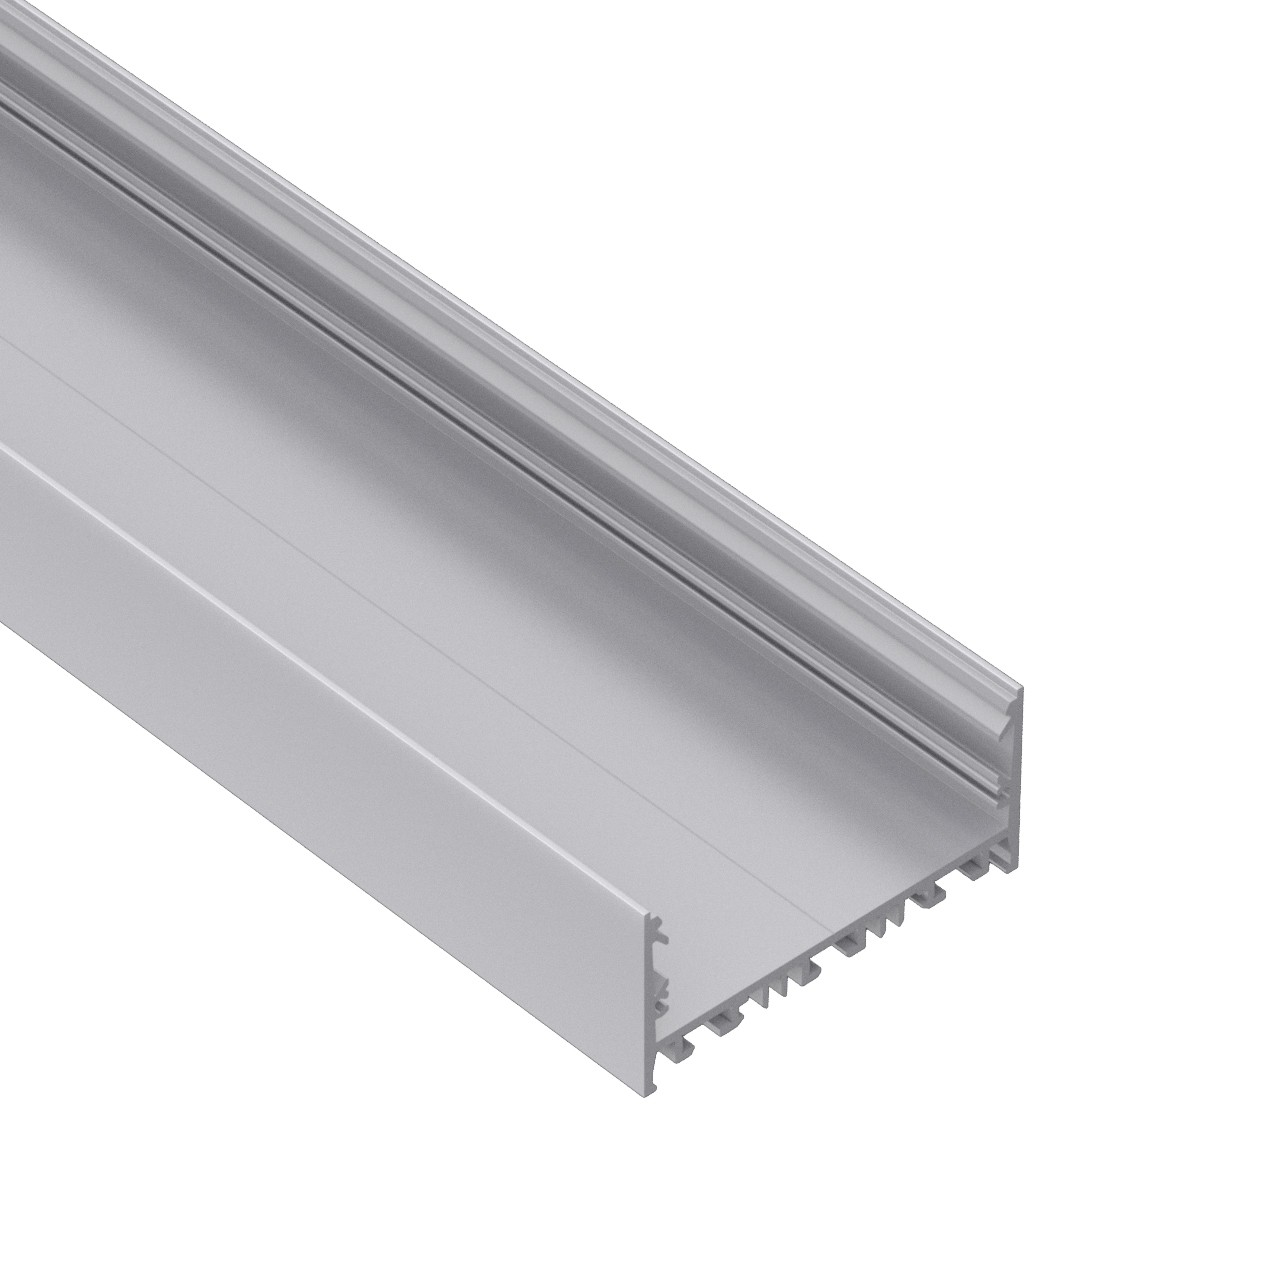 EU80 Led Aluminium Profile